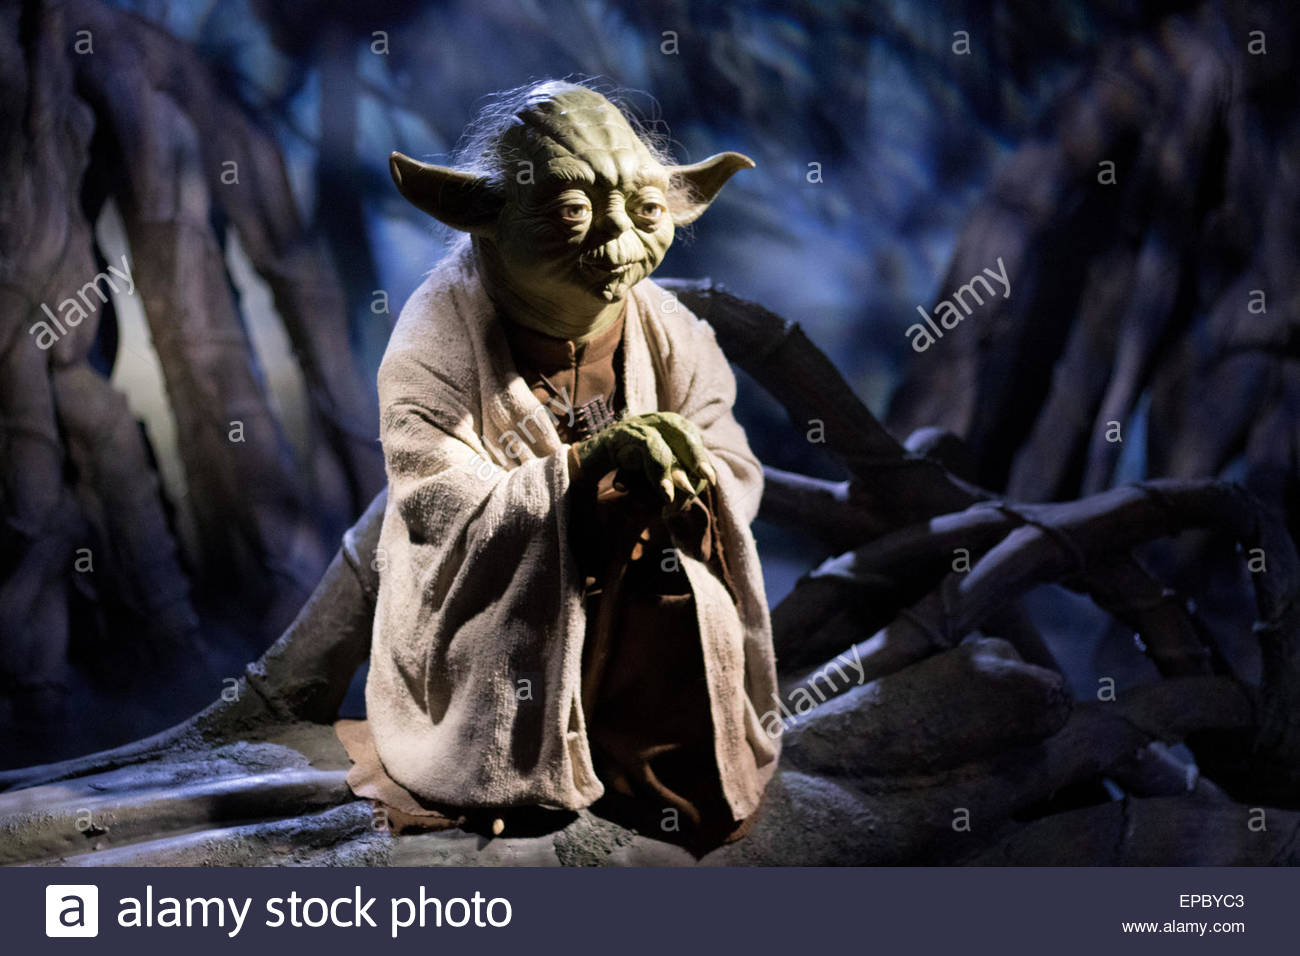 Puppet Yoda at Madame Tussauds London - Stock Image